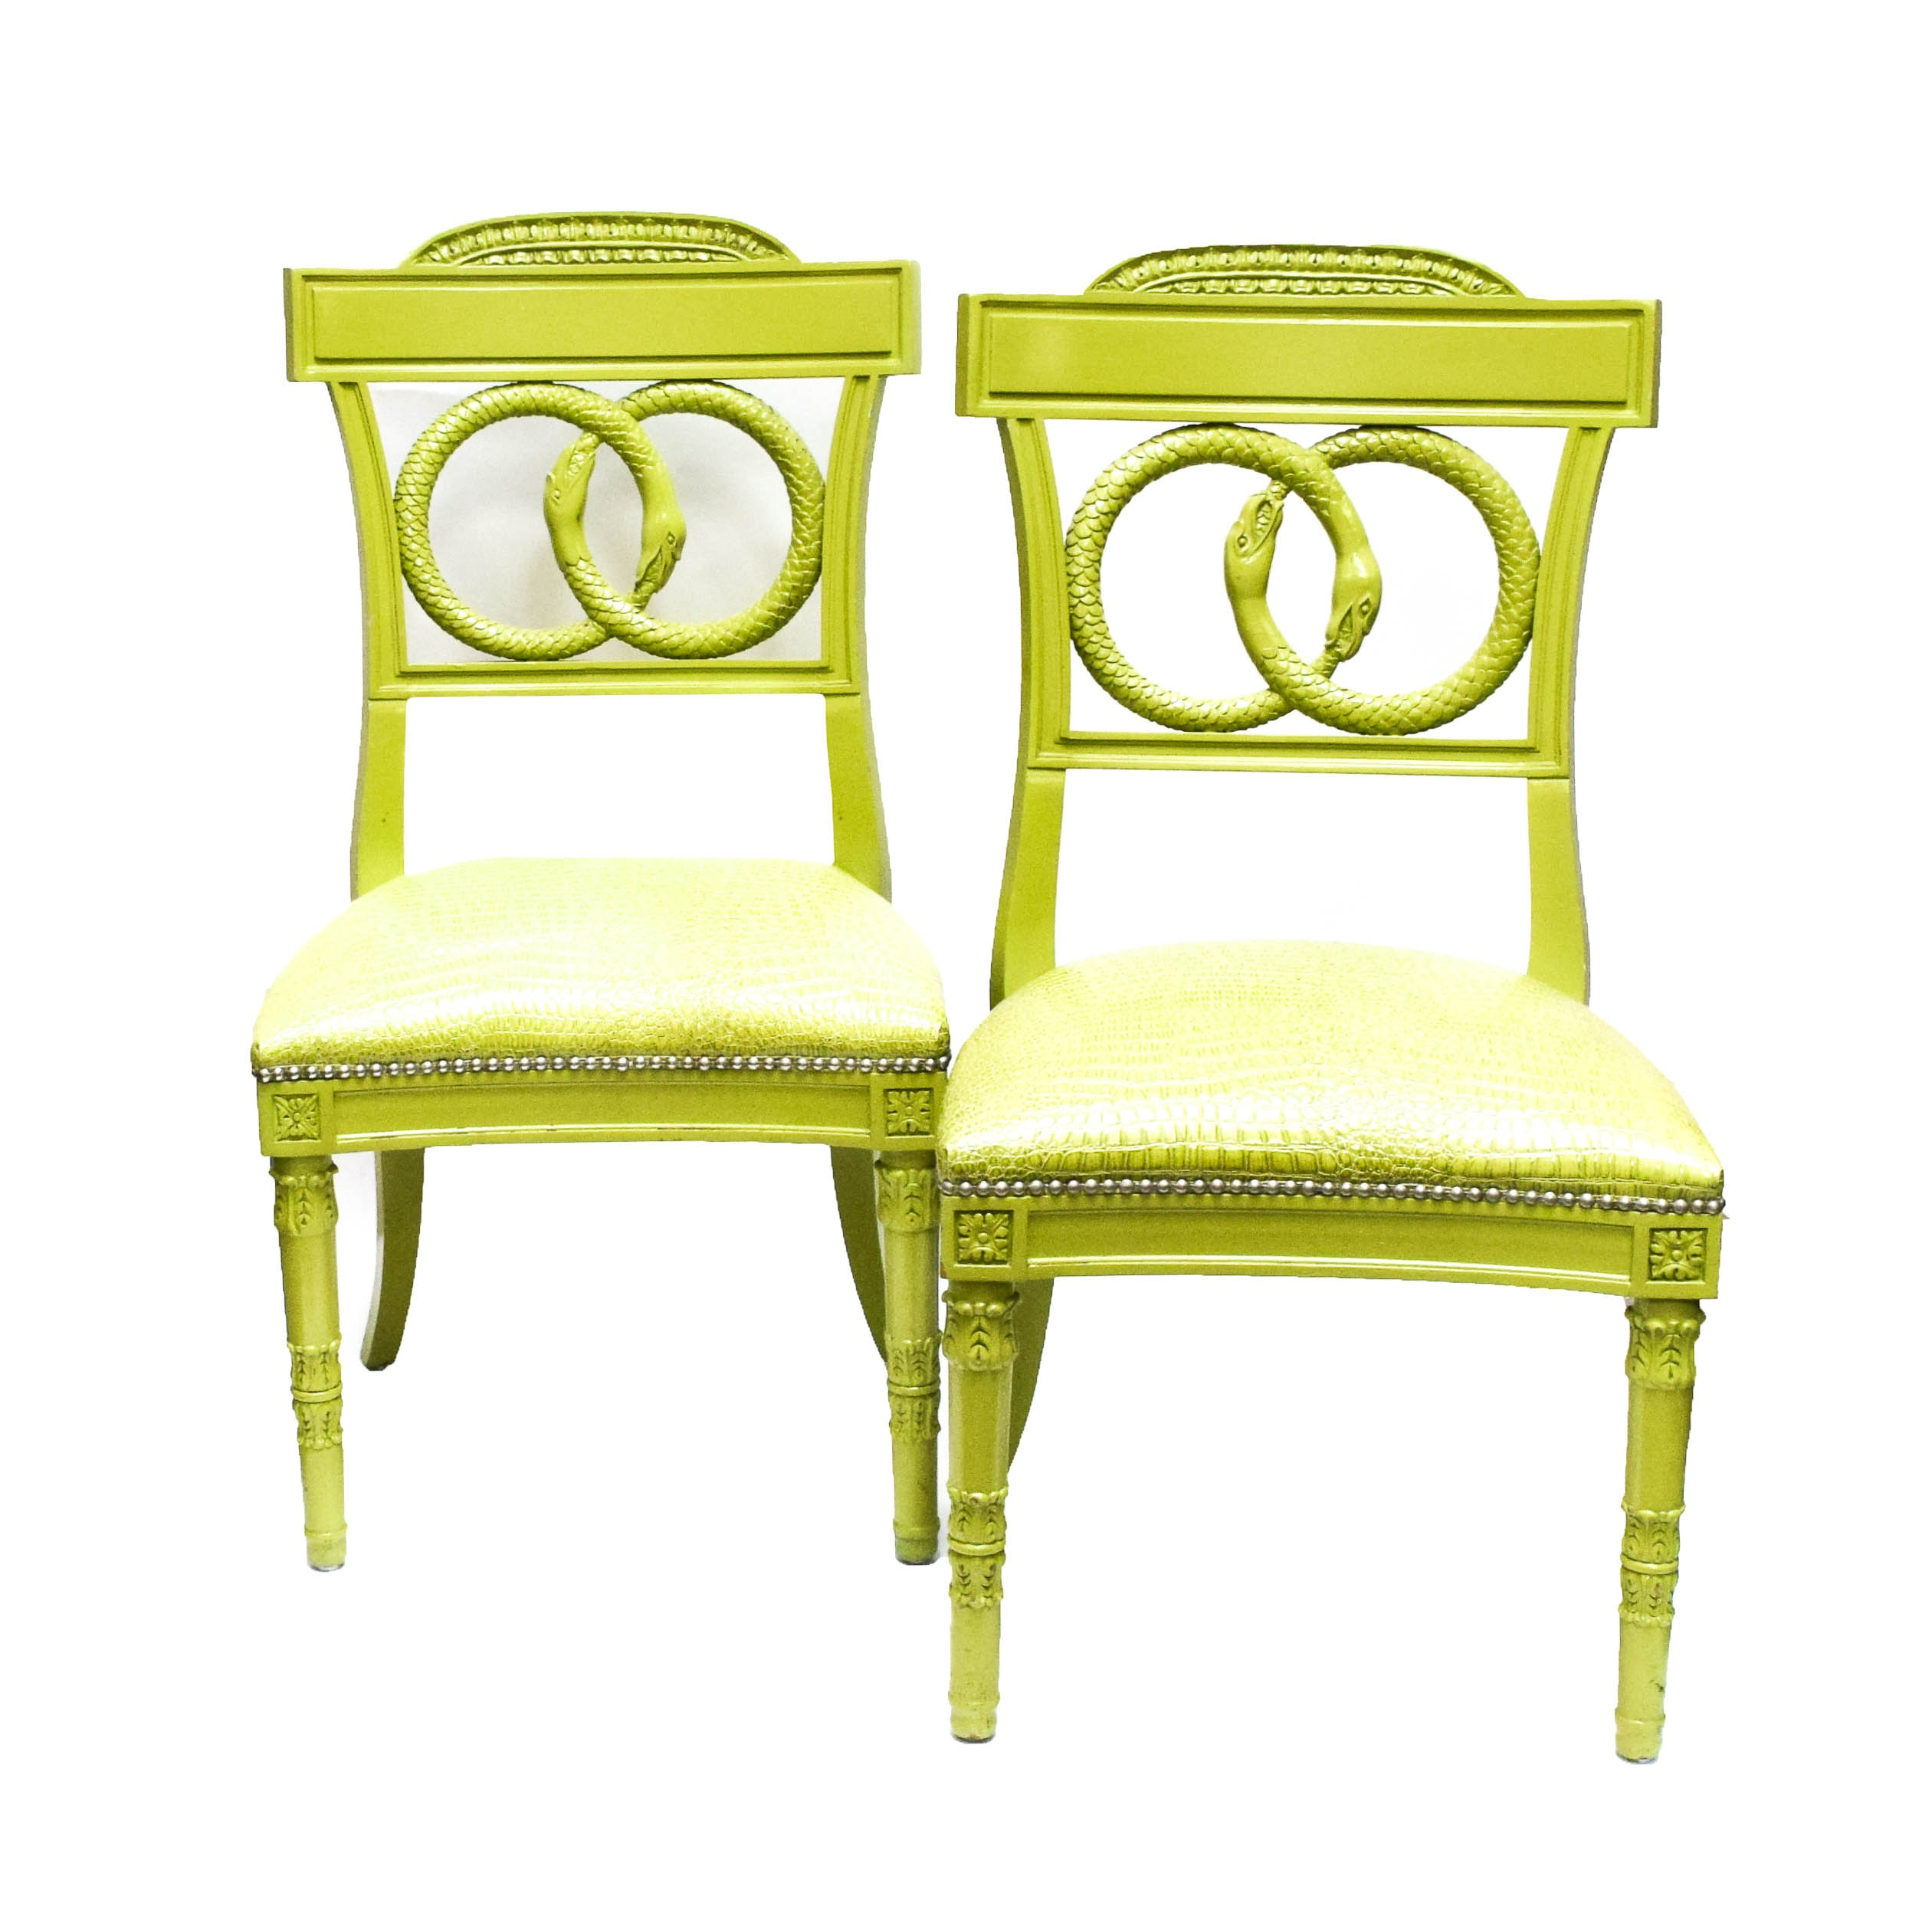 Pair of Painted Wood Chairs